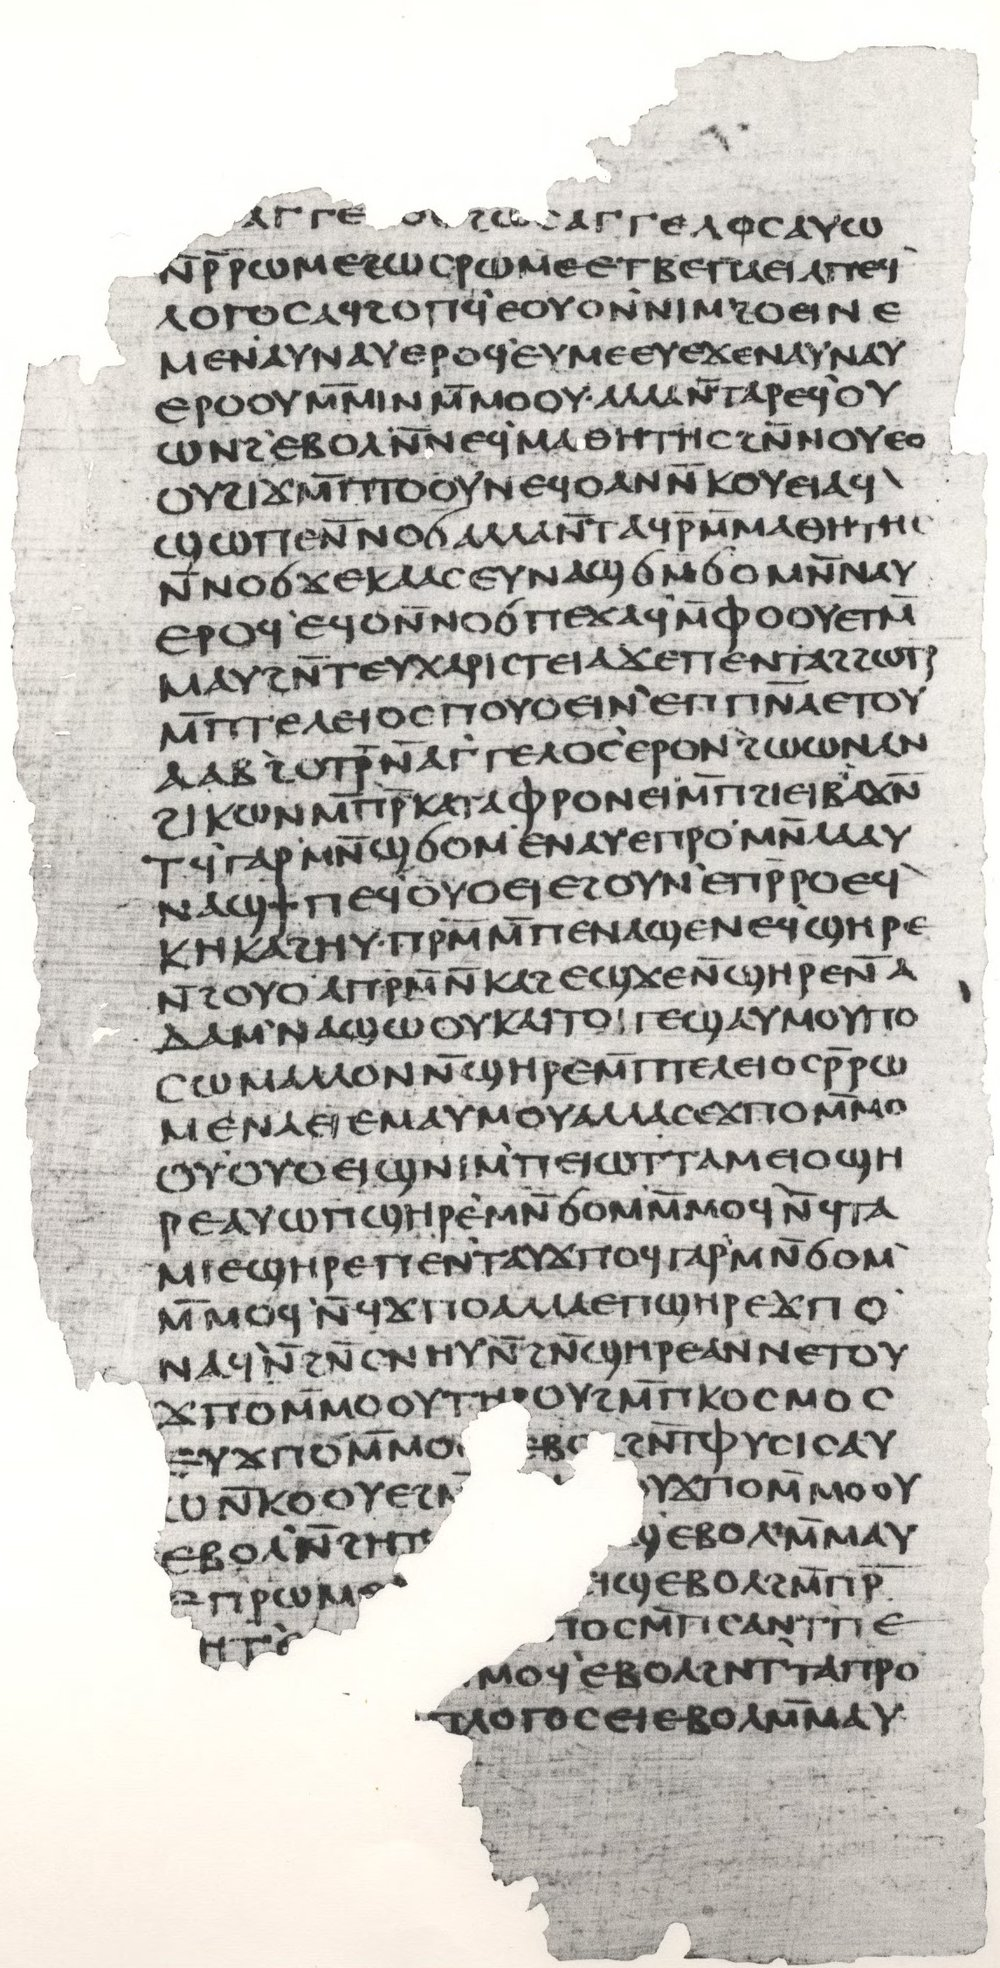 Gospel_of_Philip_facsimile_Page_58.jpg